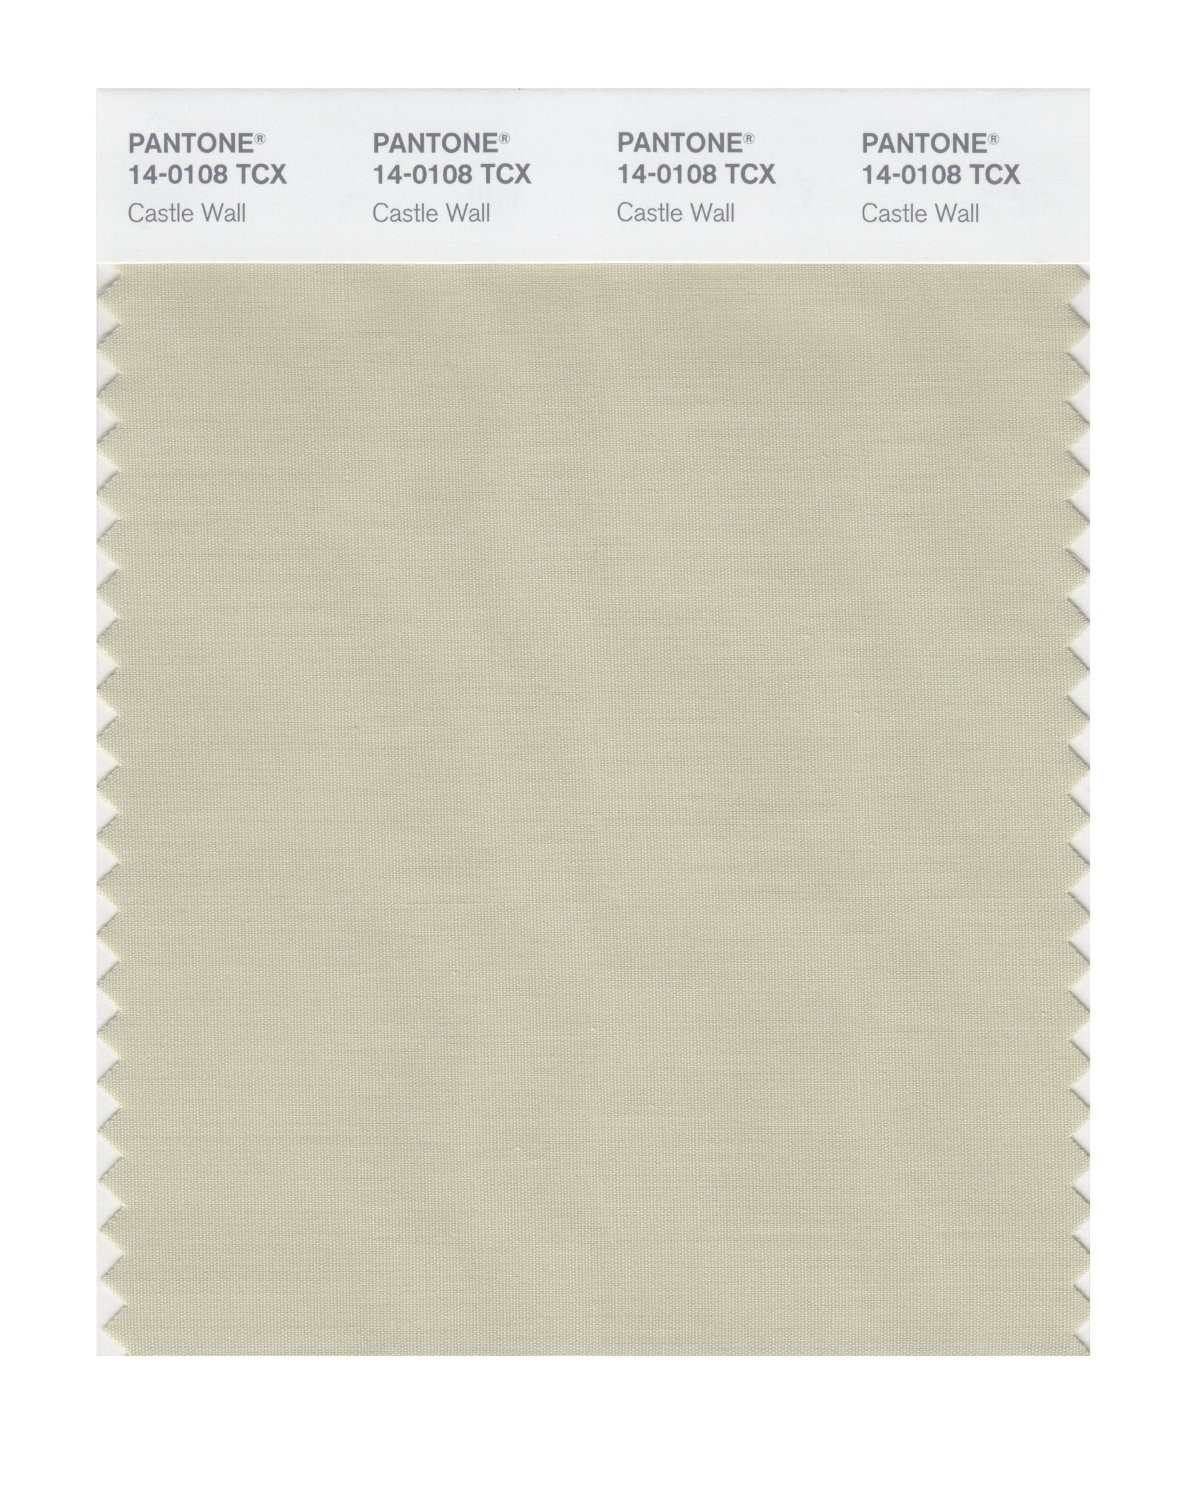 Pantone 14-0108 TCX Swatch Card Castle Wall